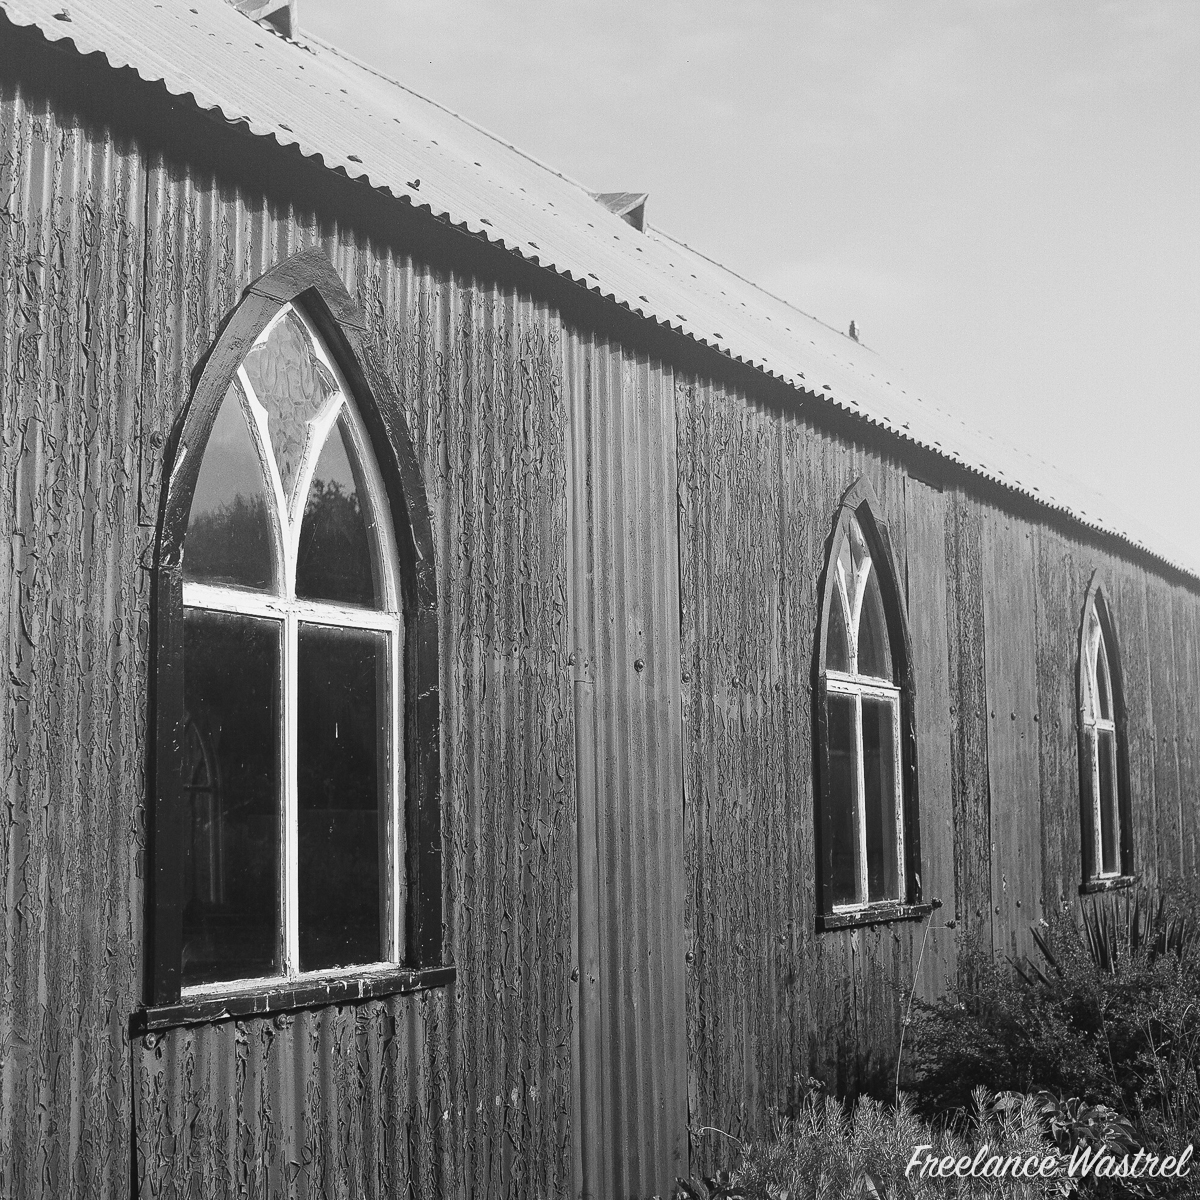 Tin Tabernacle, October 2019